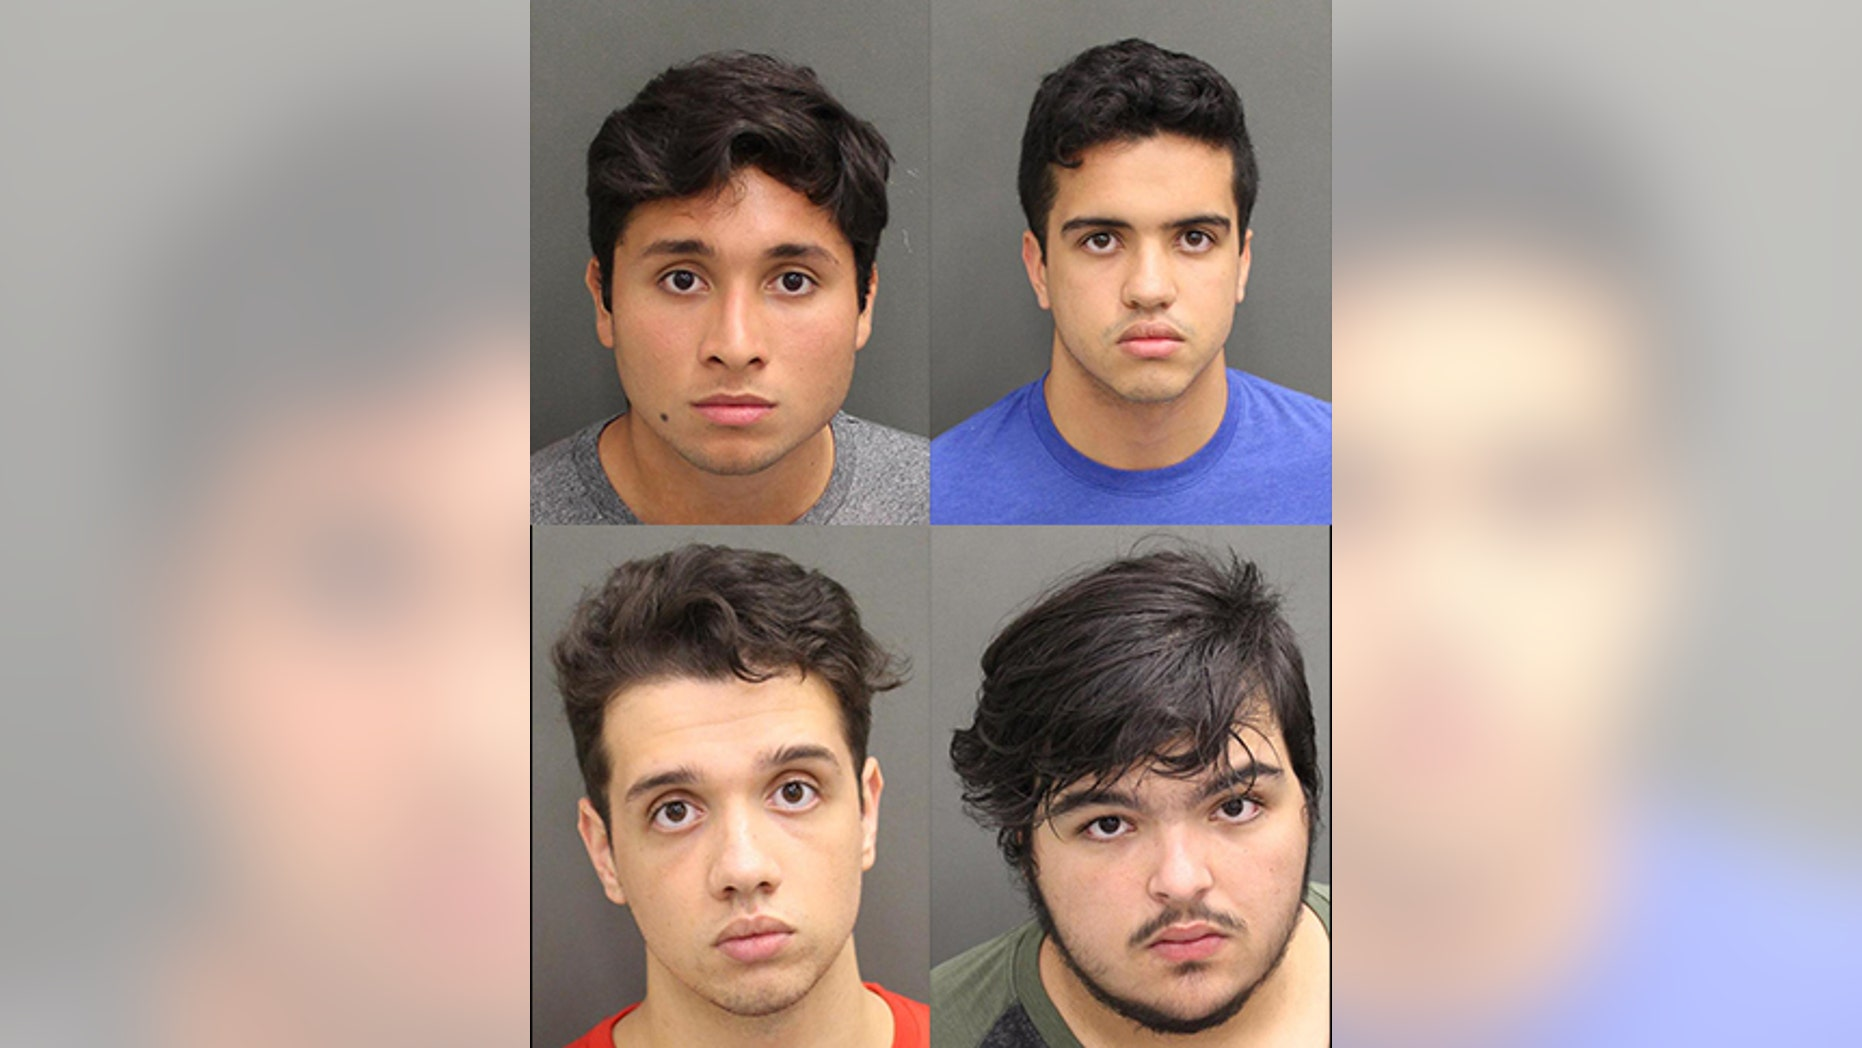 Miguel Baez Arriechi, Enrique Lopez Cosson, Manuel Zavarse and Gabriel Zavarse Cedeno have been accused of taking turns raping a woman in Orange County, Florida in May.